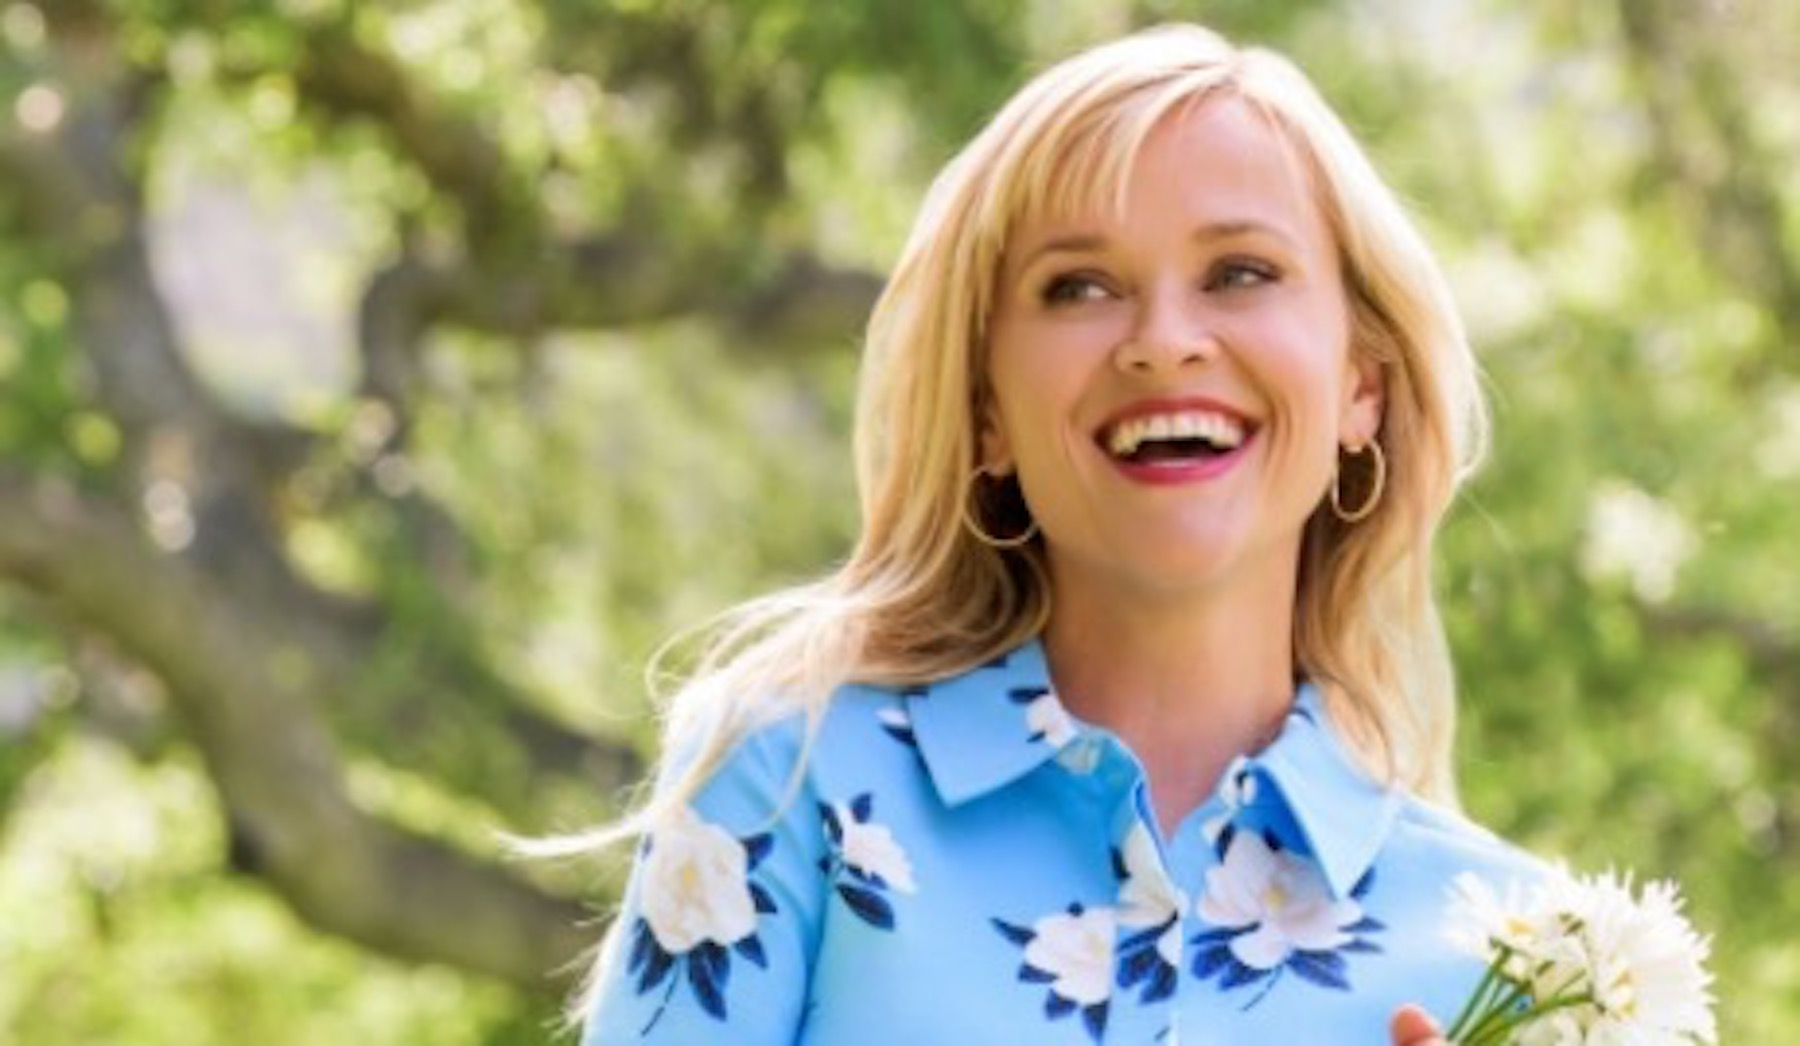 Reese, reese witherspoon, blonde, South, Southern, nature